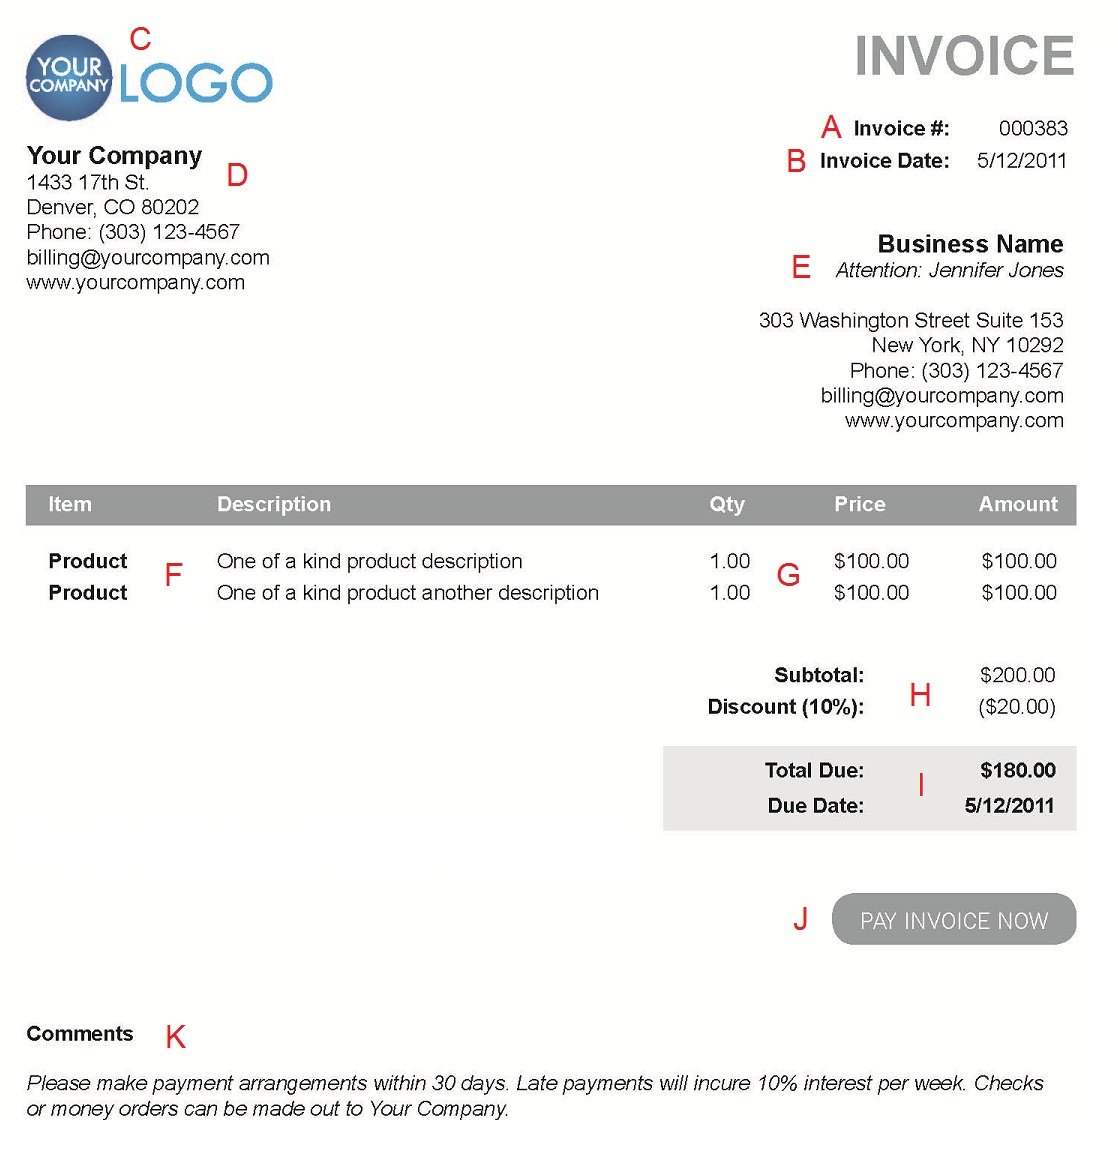 Usdgus  Inspiring The  Different Sections Of An Electronic Payment Invoice With Great A  With Beautiful Receipt Doc Also Snbc Receipt Printer In Addition Photography Receipt Template And Auto Receipt Template As Well As Donation Receipts Templates Additionally Dentist Receipt From Paysimplecom With Usdgus  Great The  Different Sections Of An Electronic Payment Invoice With Beautiful A  And Inspiring Receipt Doc Also Snbc Receipt Printer In Addition Photography Receipt Template From Paysimplecom